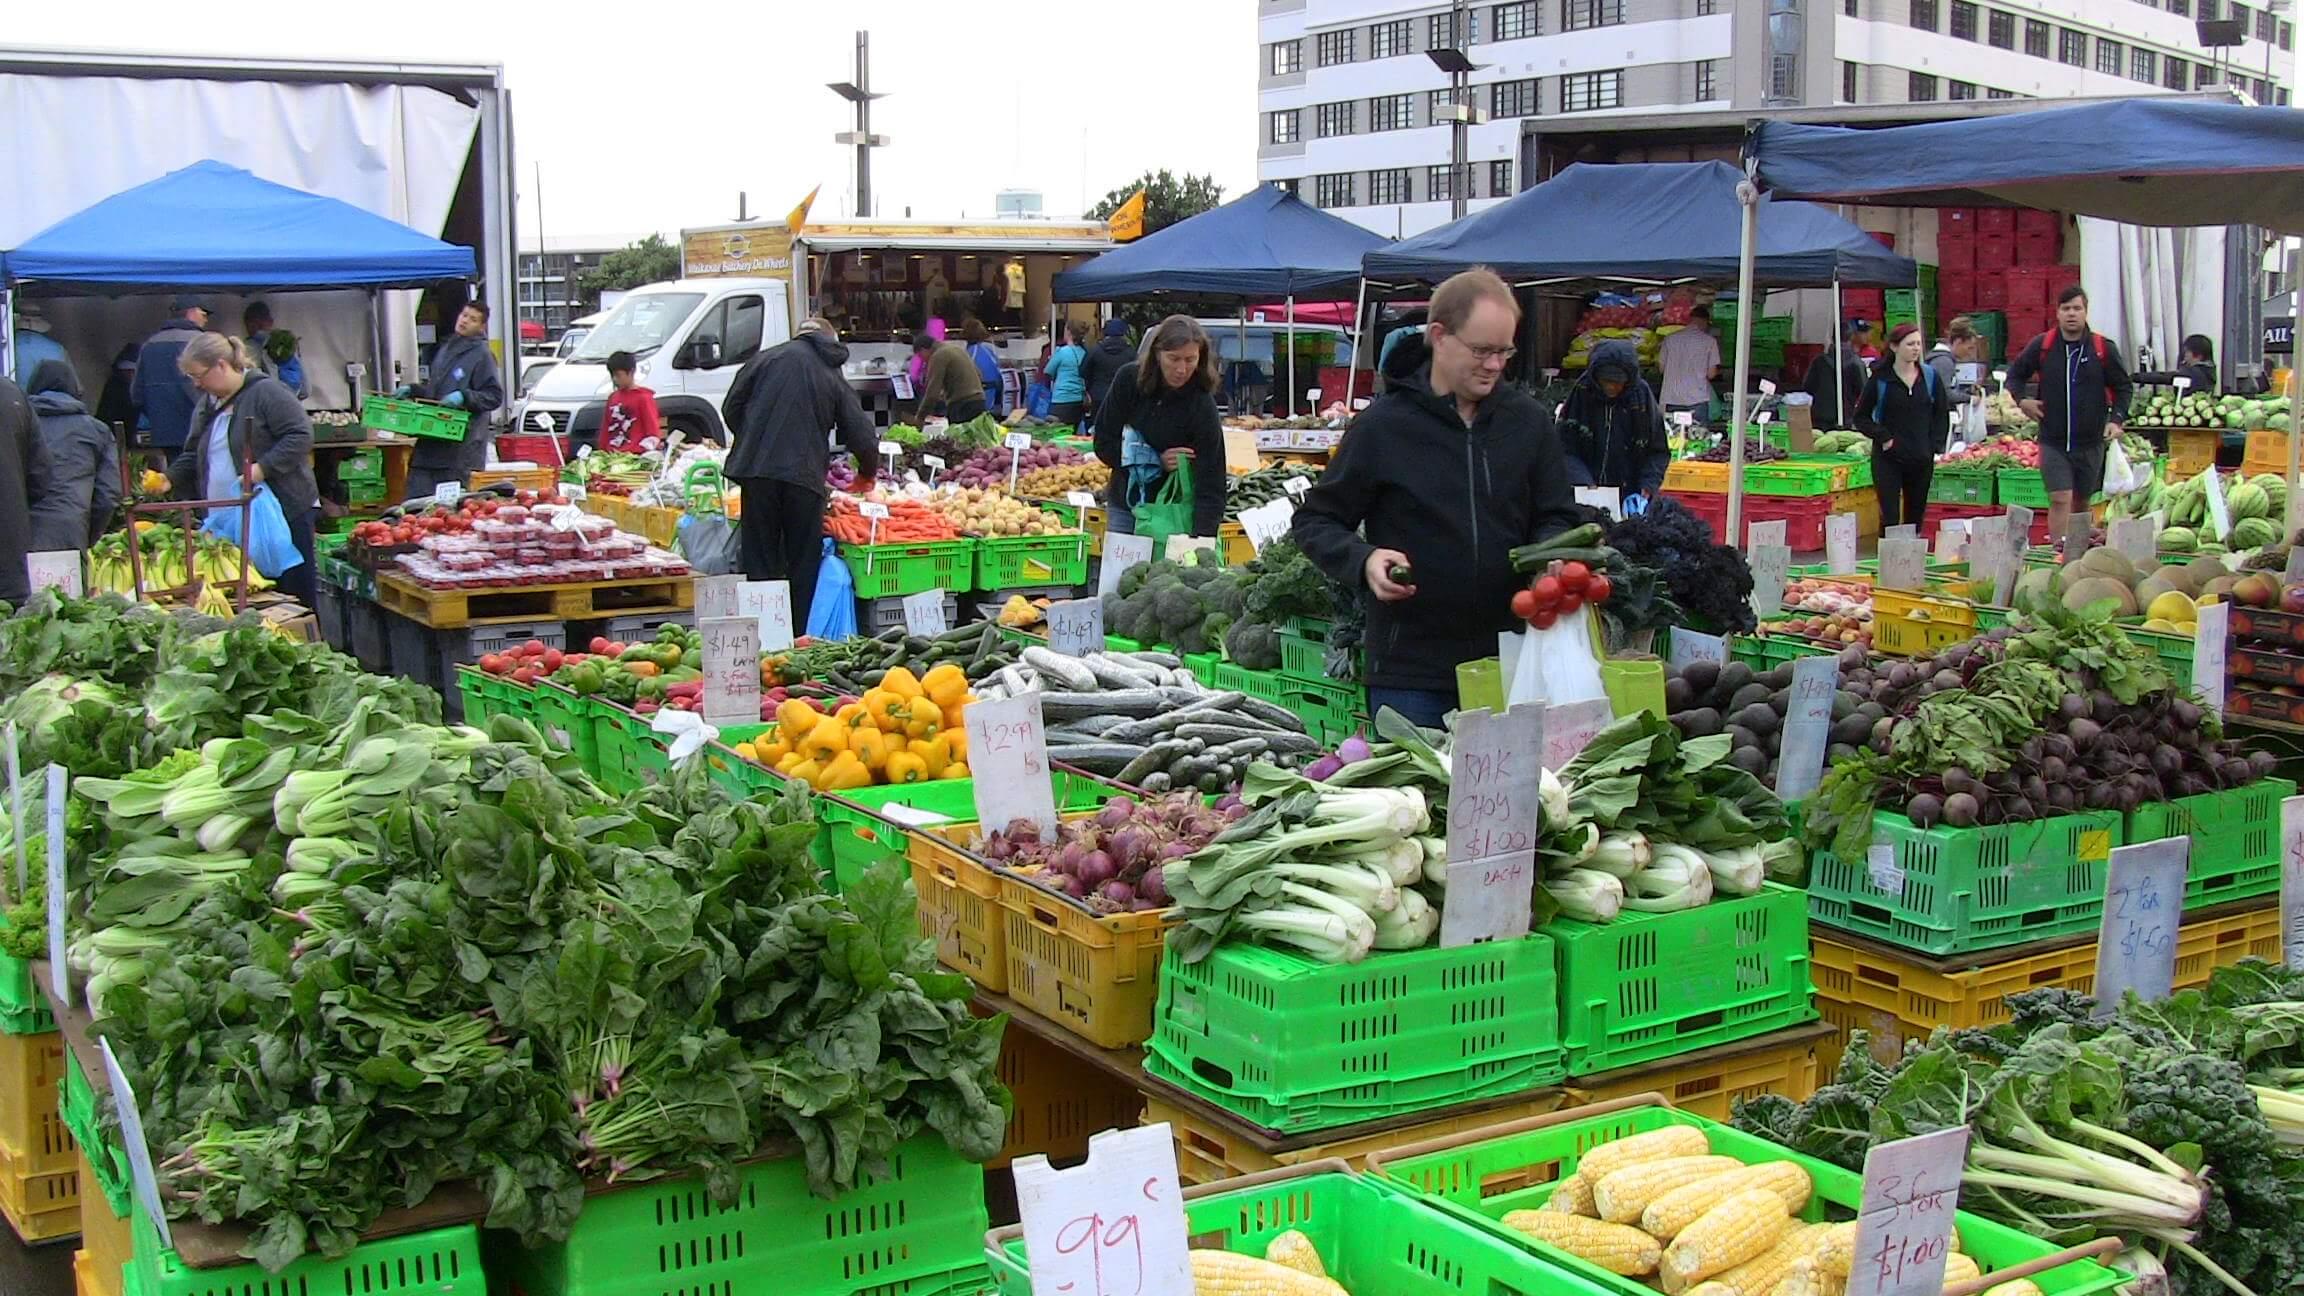 Wellington_Farmers_Market_Feb_2015_1